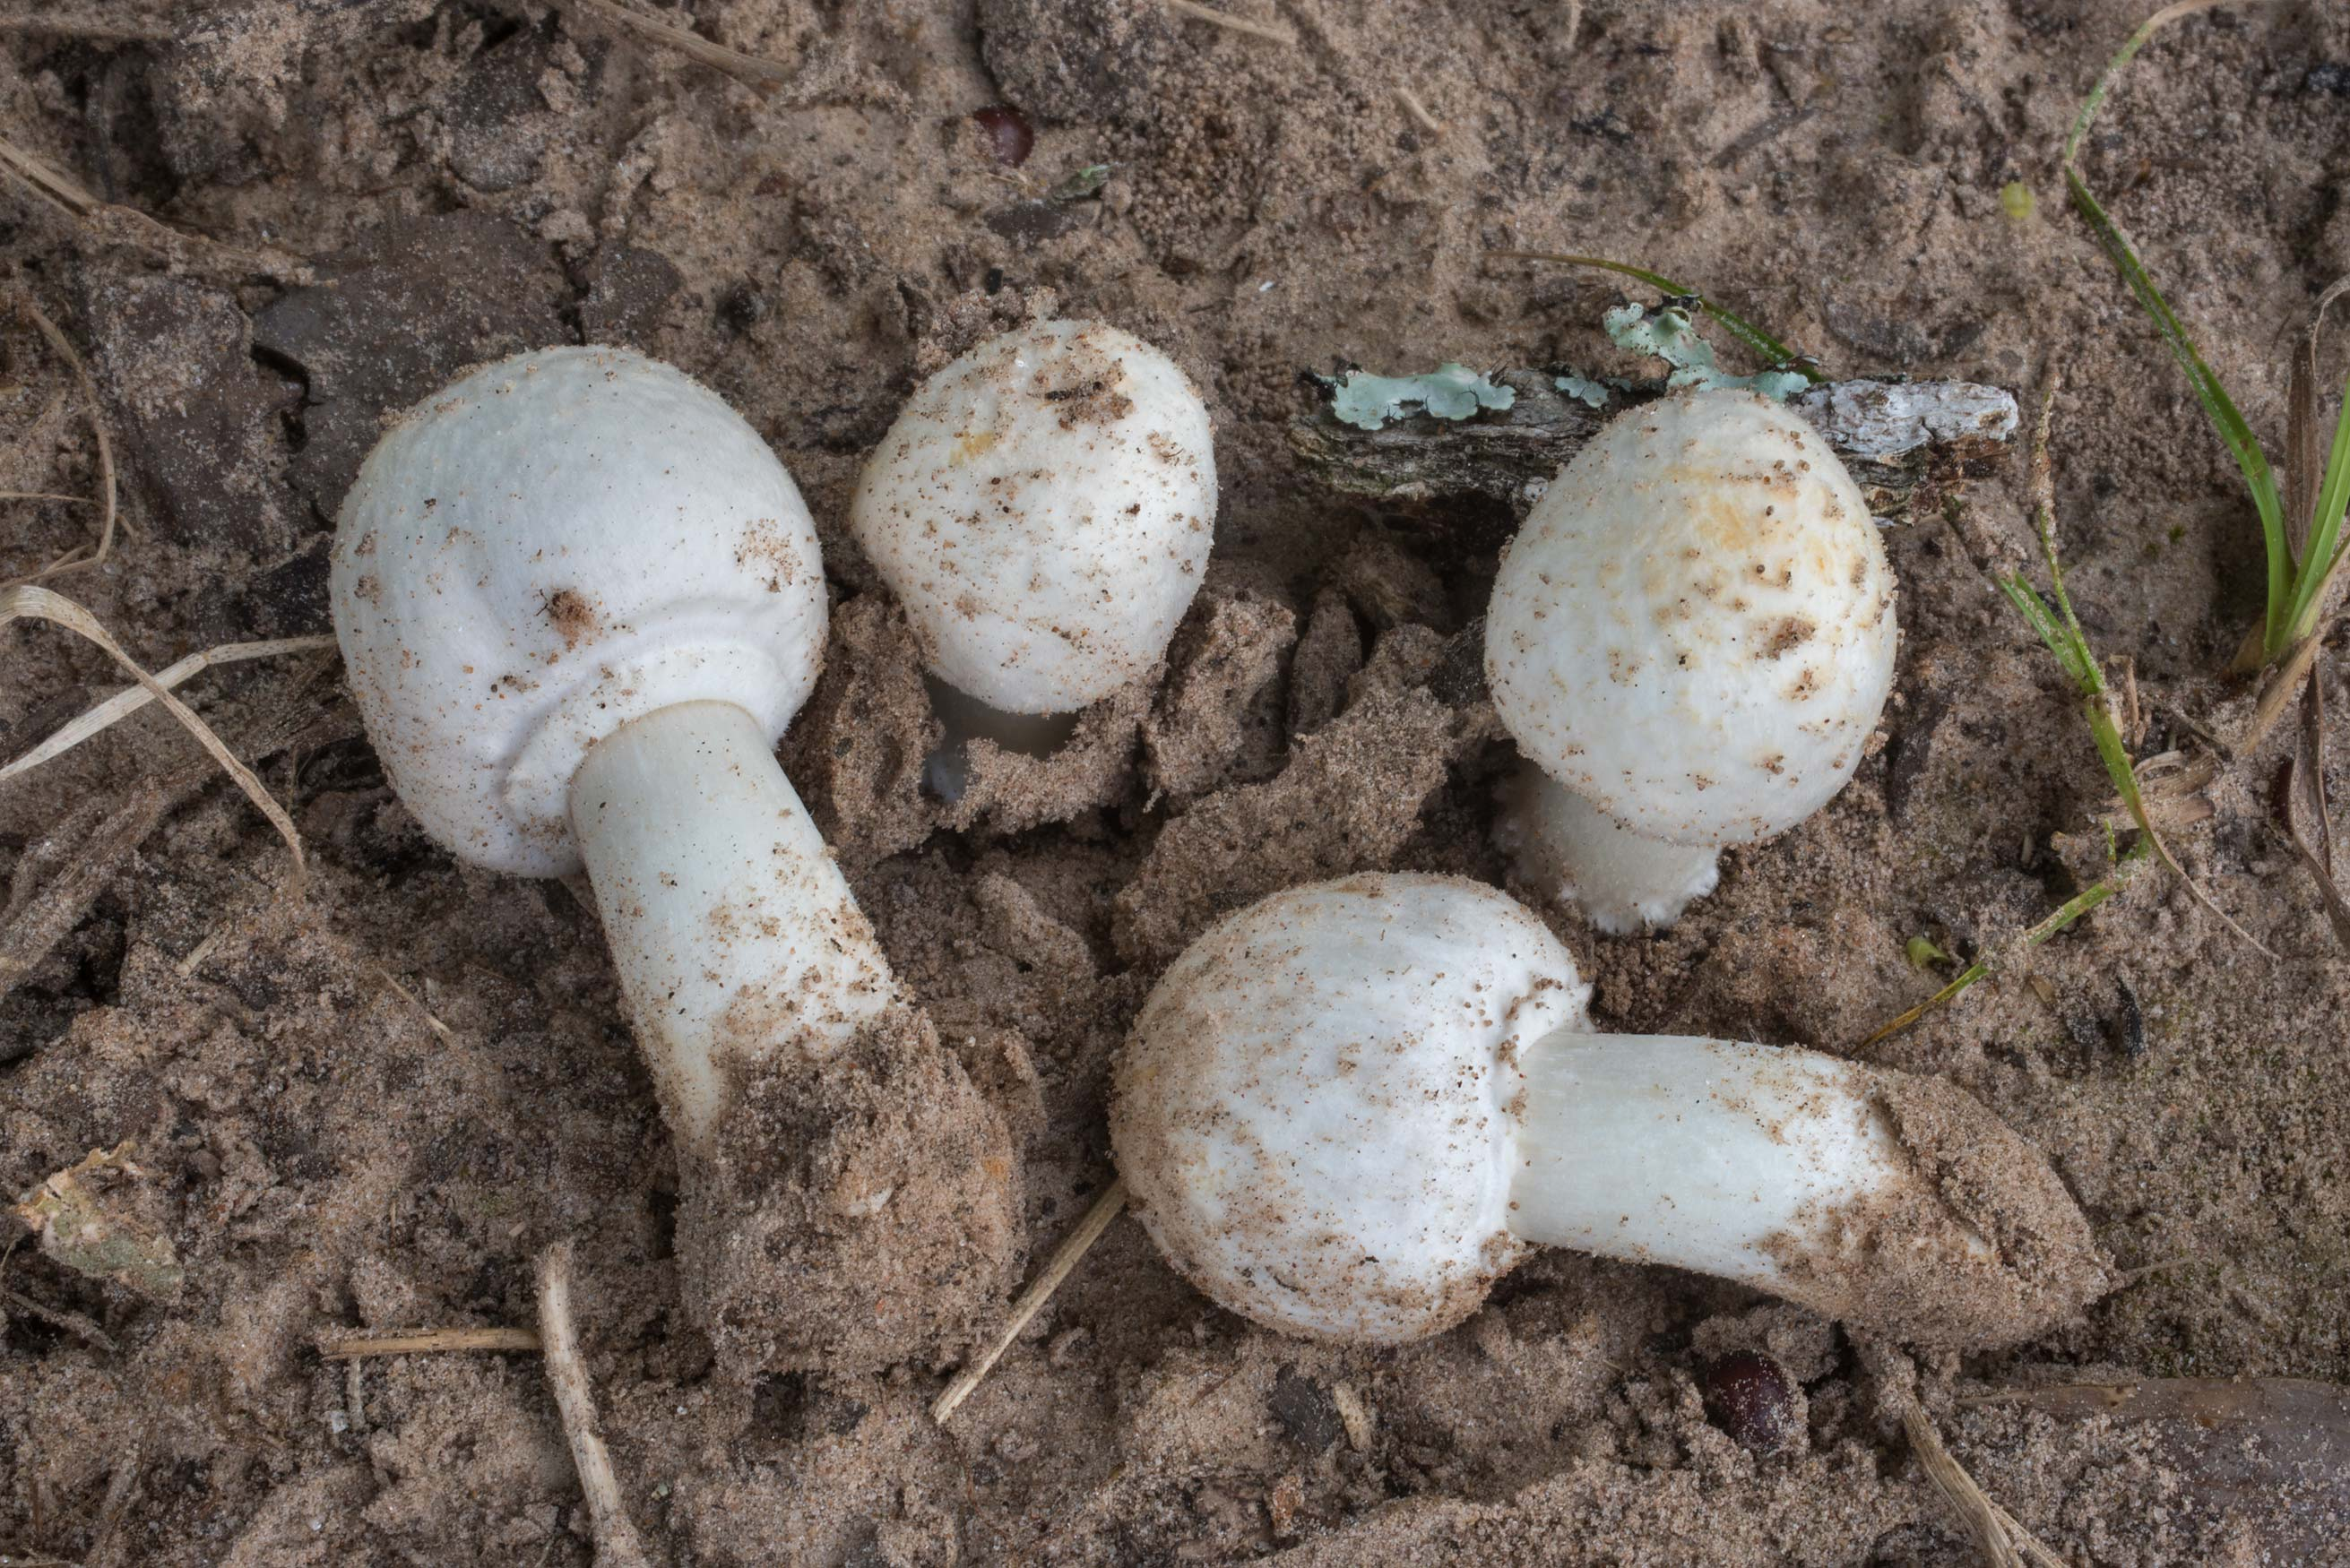 Button mushrooms (Agaricus) in Lick Creek Park. College Station, Texas